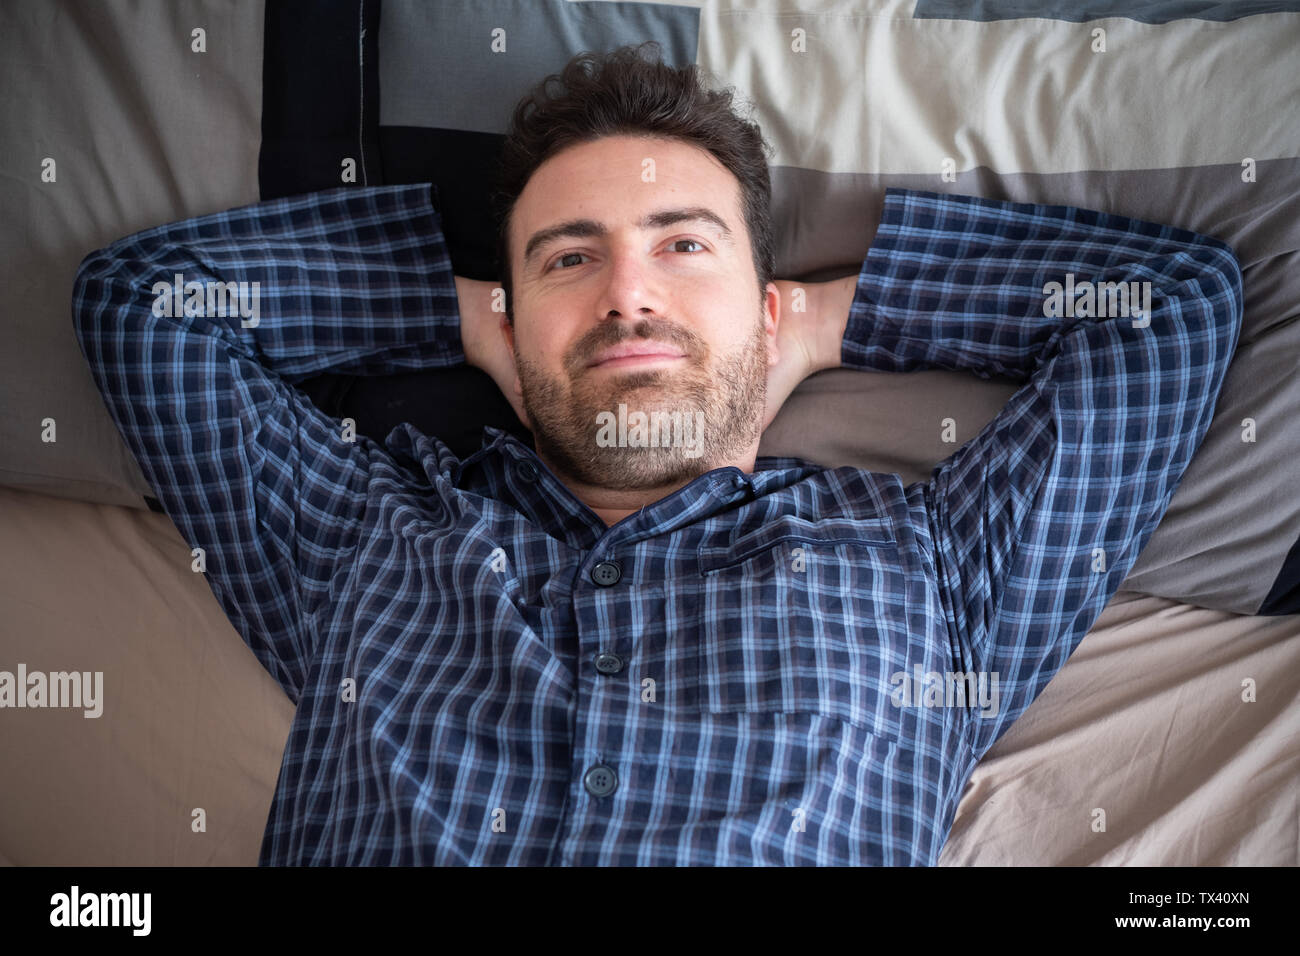 Relaxed man lying in bed and feeling good - Stock Image